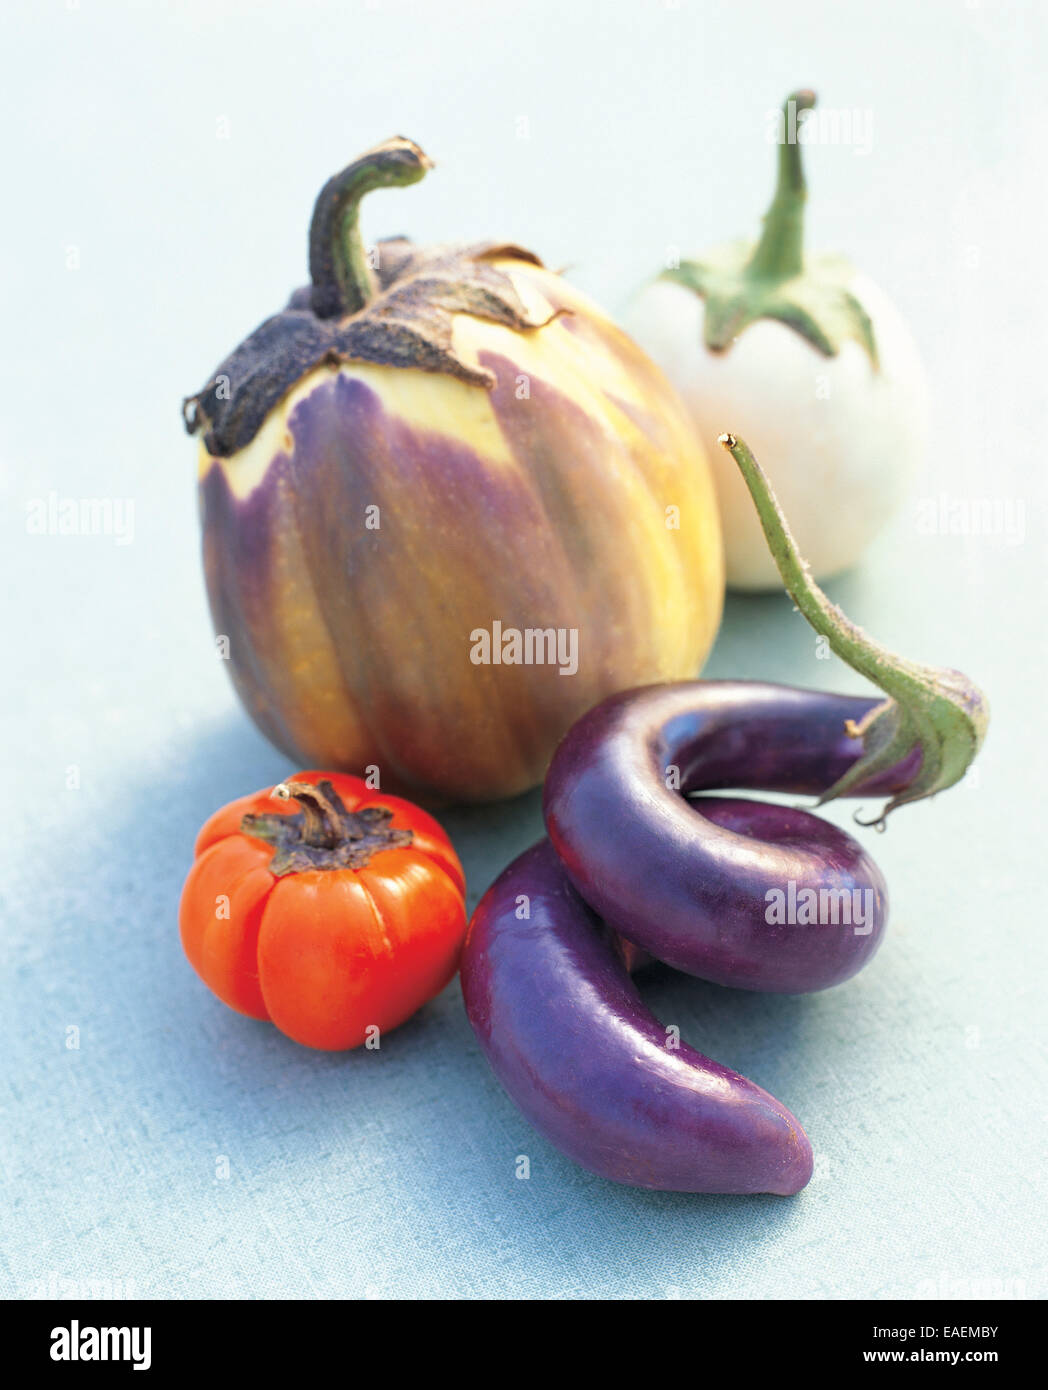 Variety of Eggplants on Blue - Stock Image